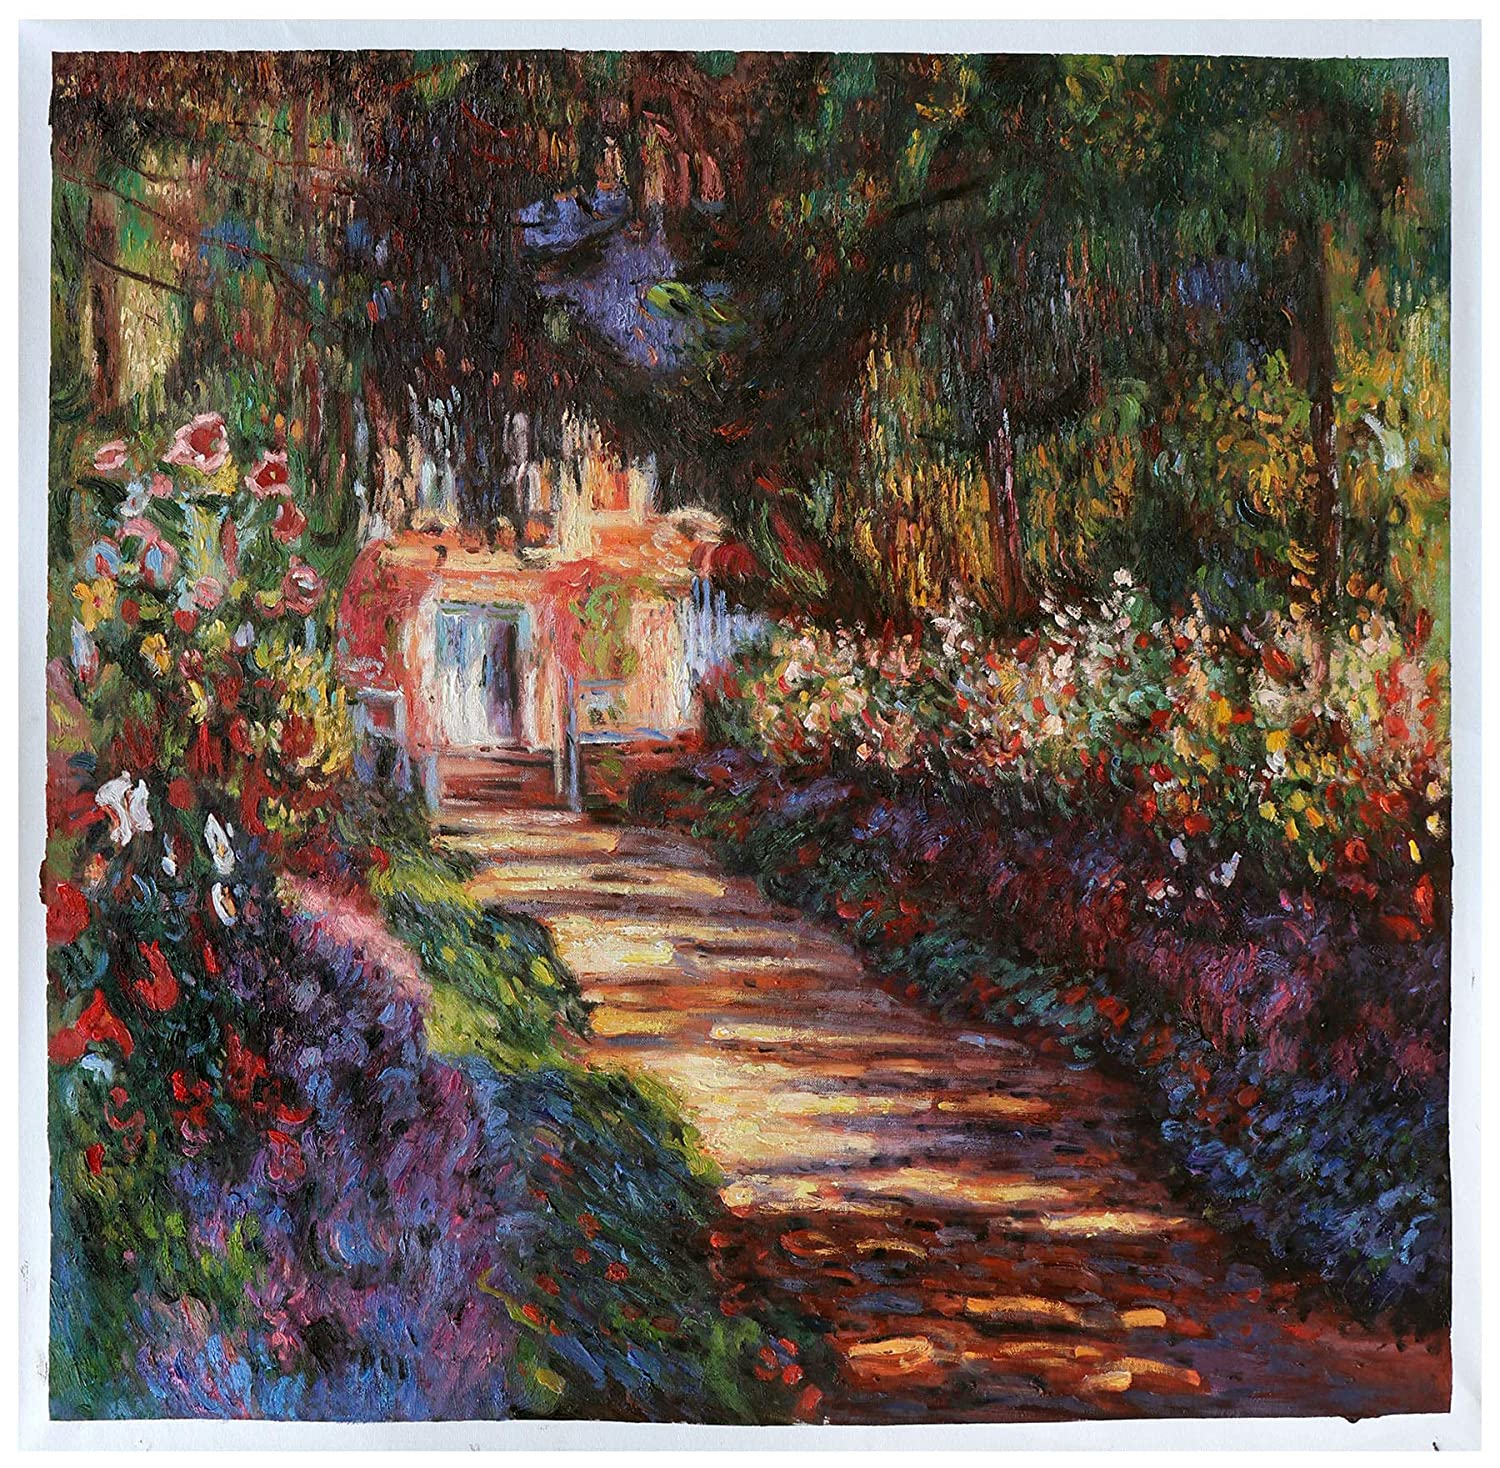 Pathway in Monet's Garden at Giverny - Claude Monet hand-painted oil painting reproduction,blossom flower garden,living room large wall art